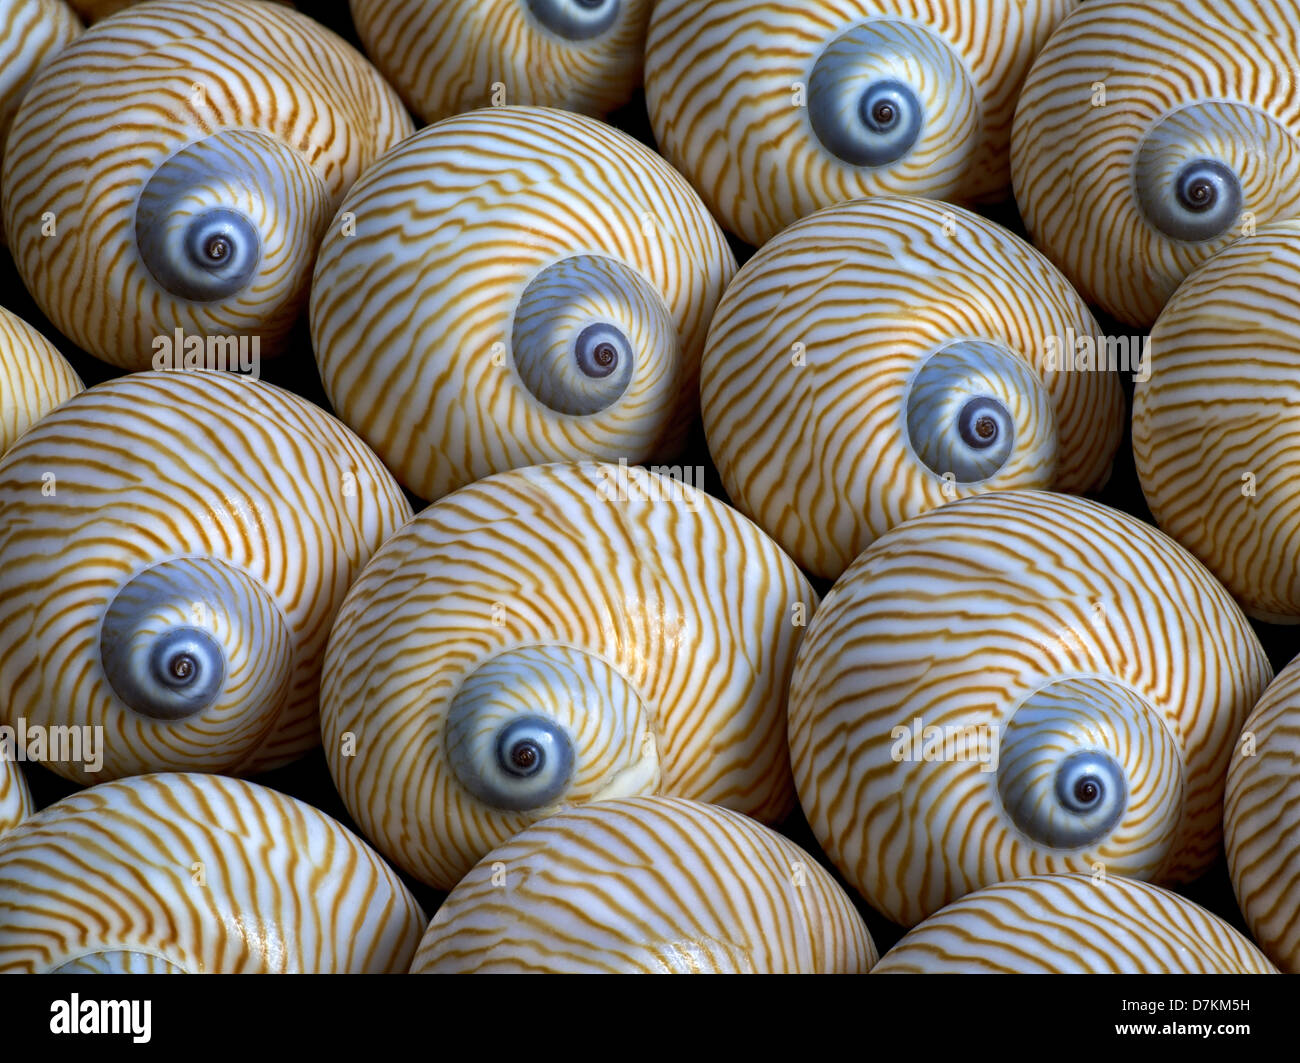 Close up of striped lune sea shell. Photo Stock